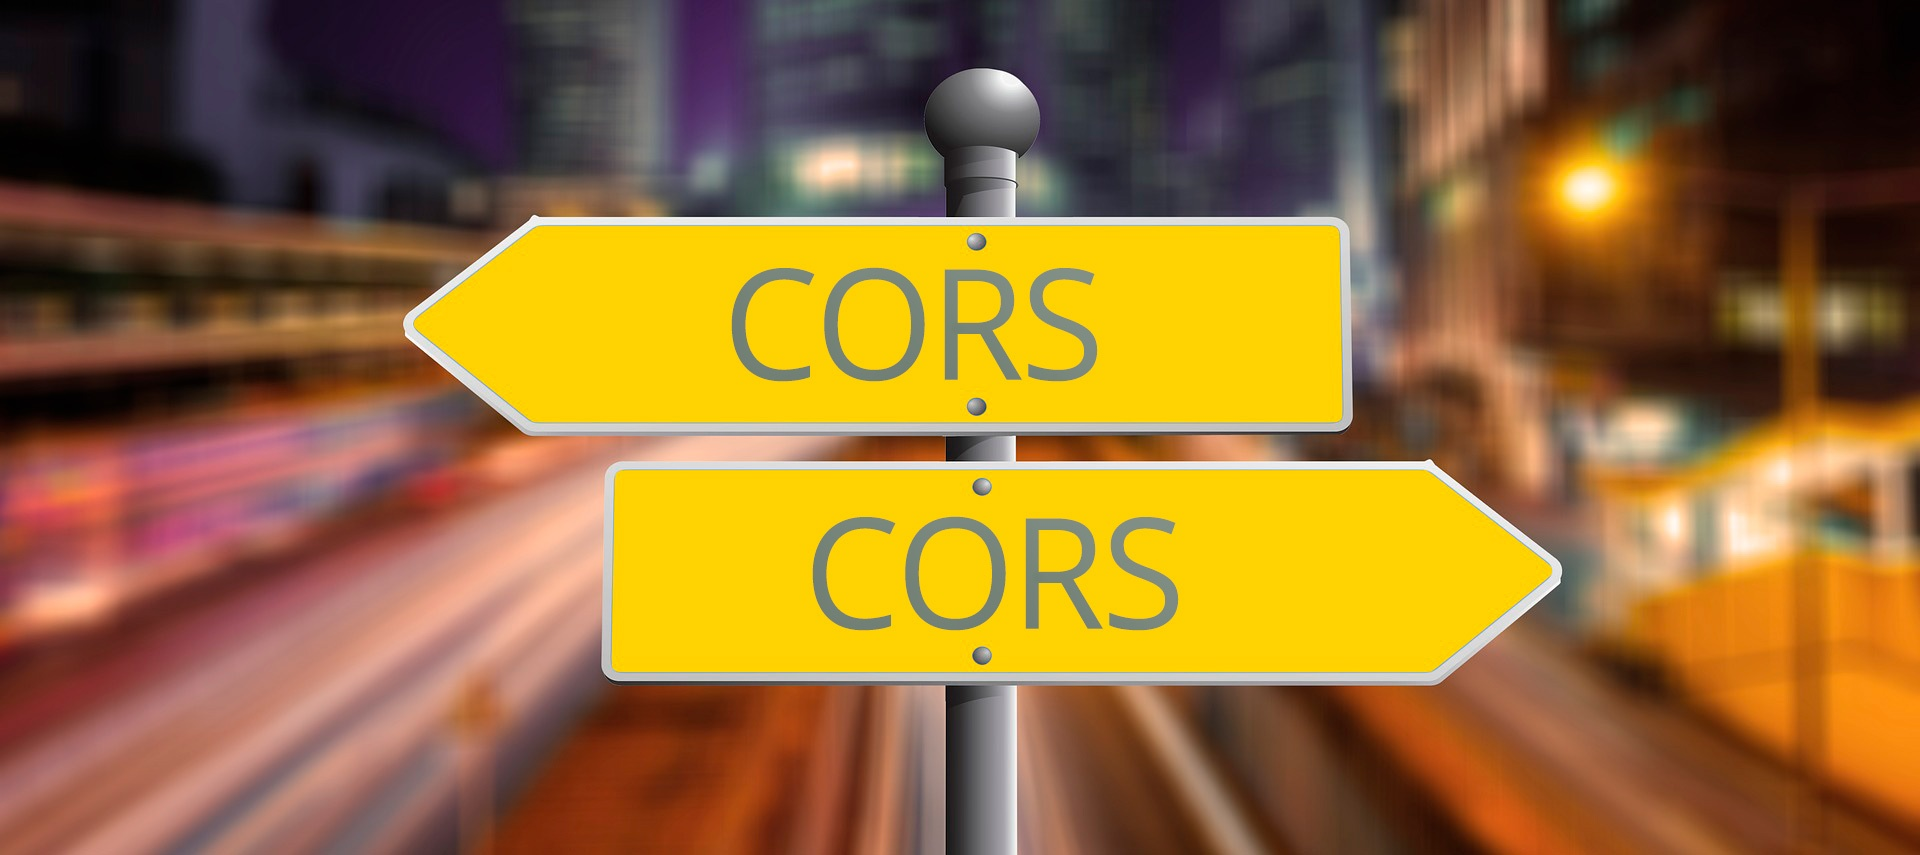 Find how to configure CORS with THEOplayer